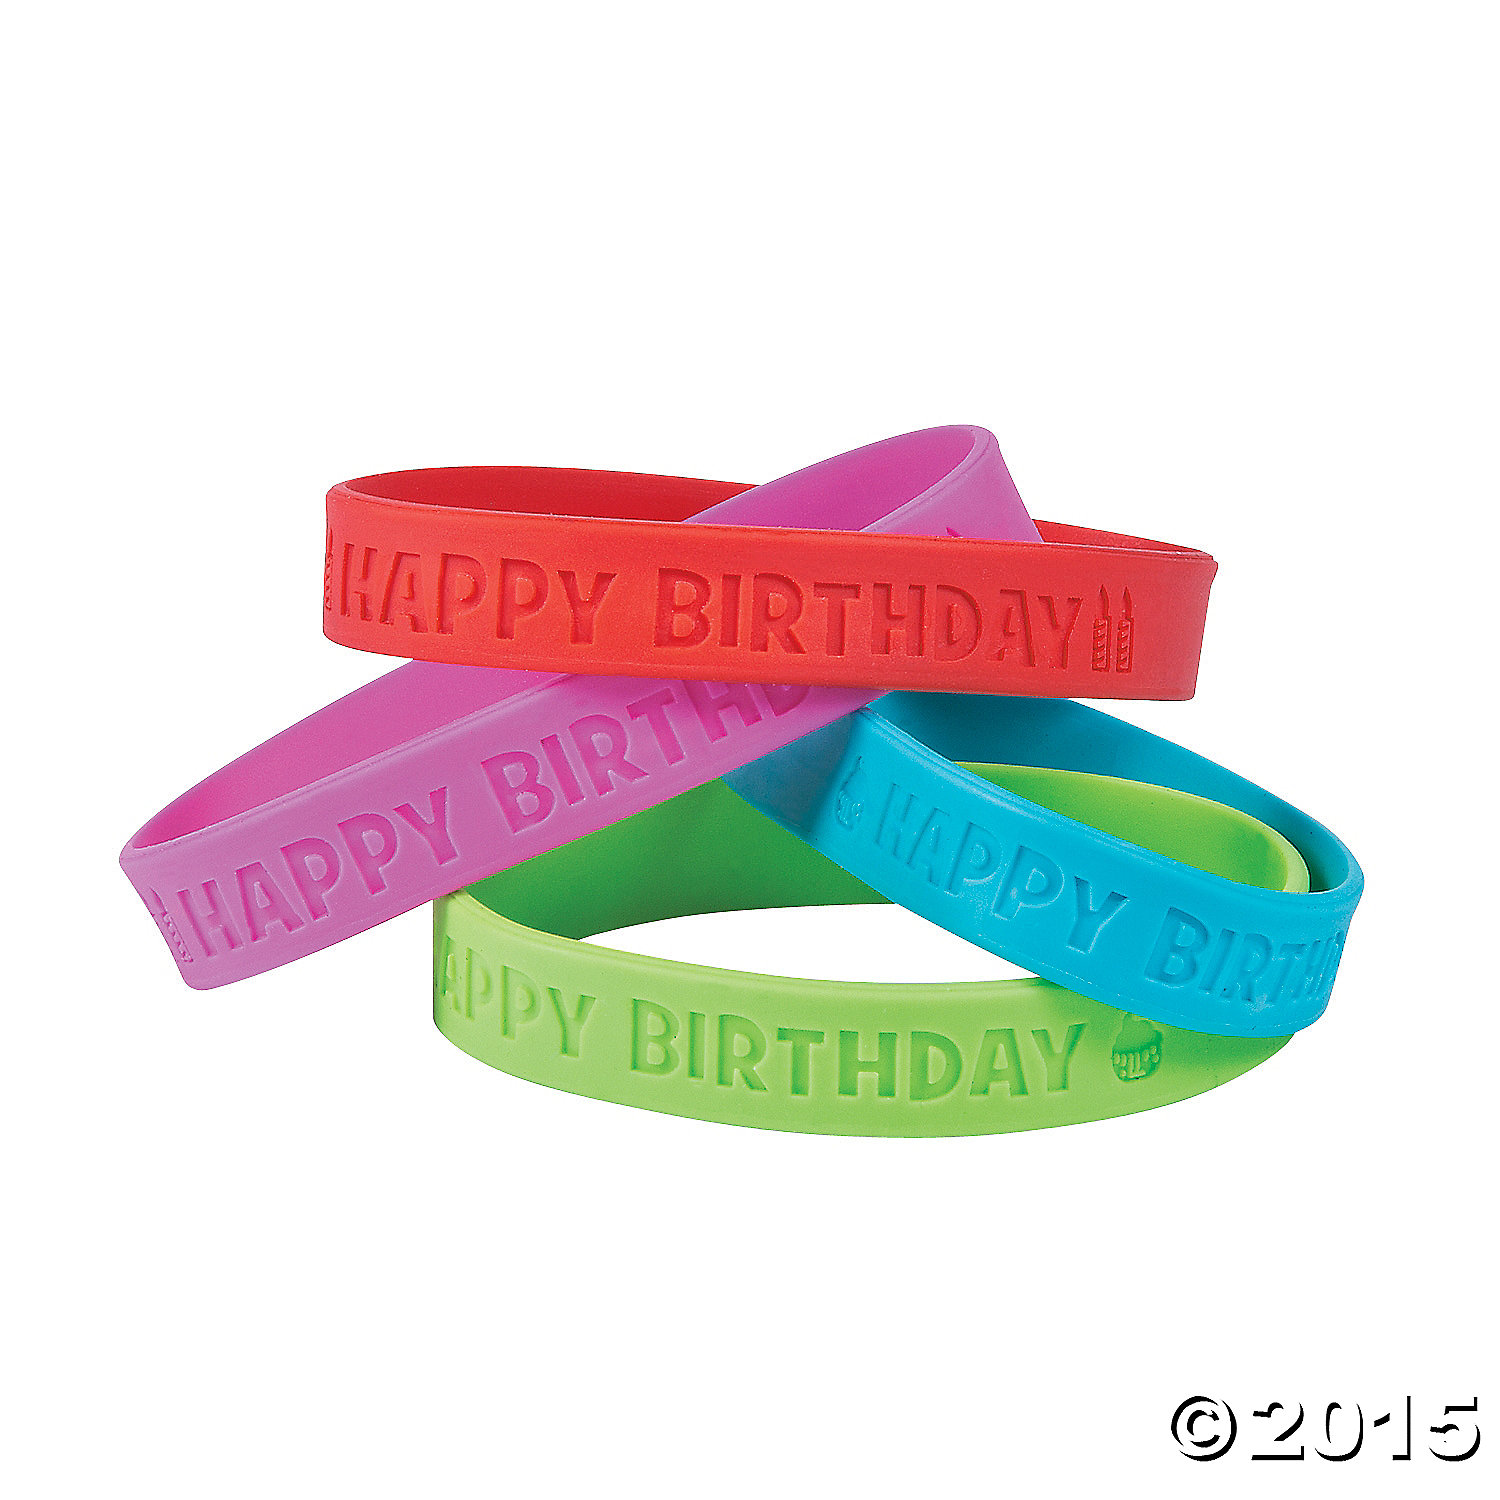 bracelets stock depositphotos of entry set wristbands event festival concert to entrance illustration the bracelet for